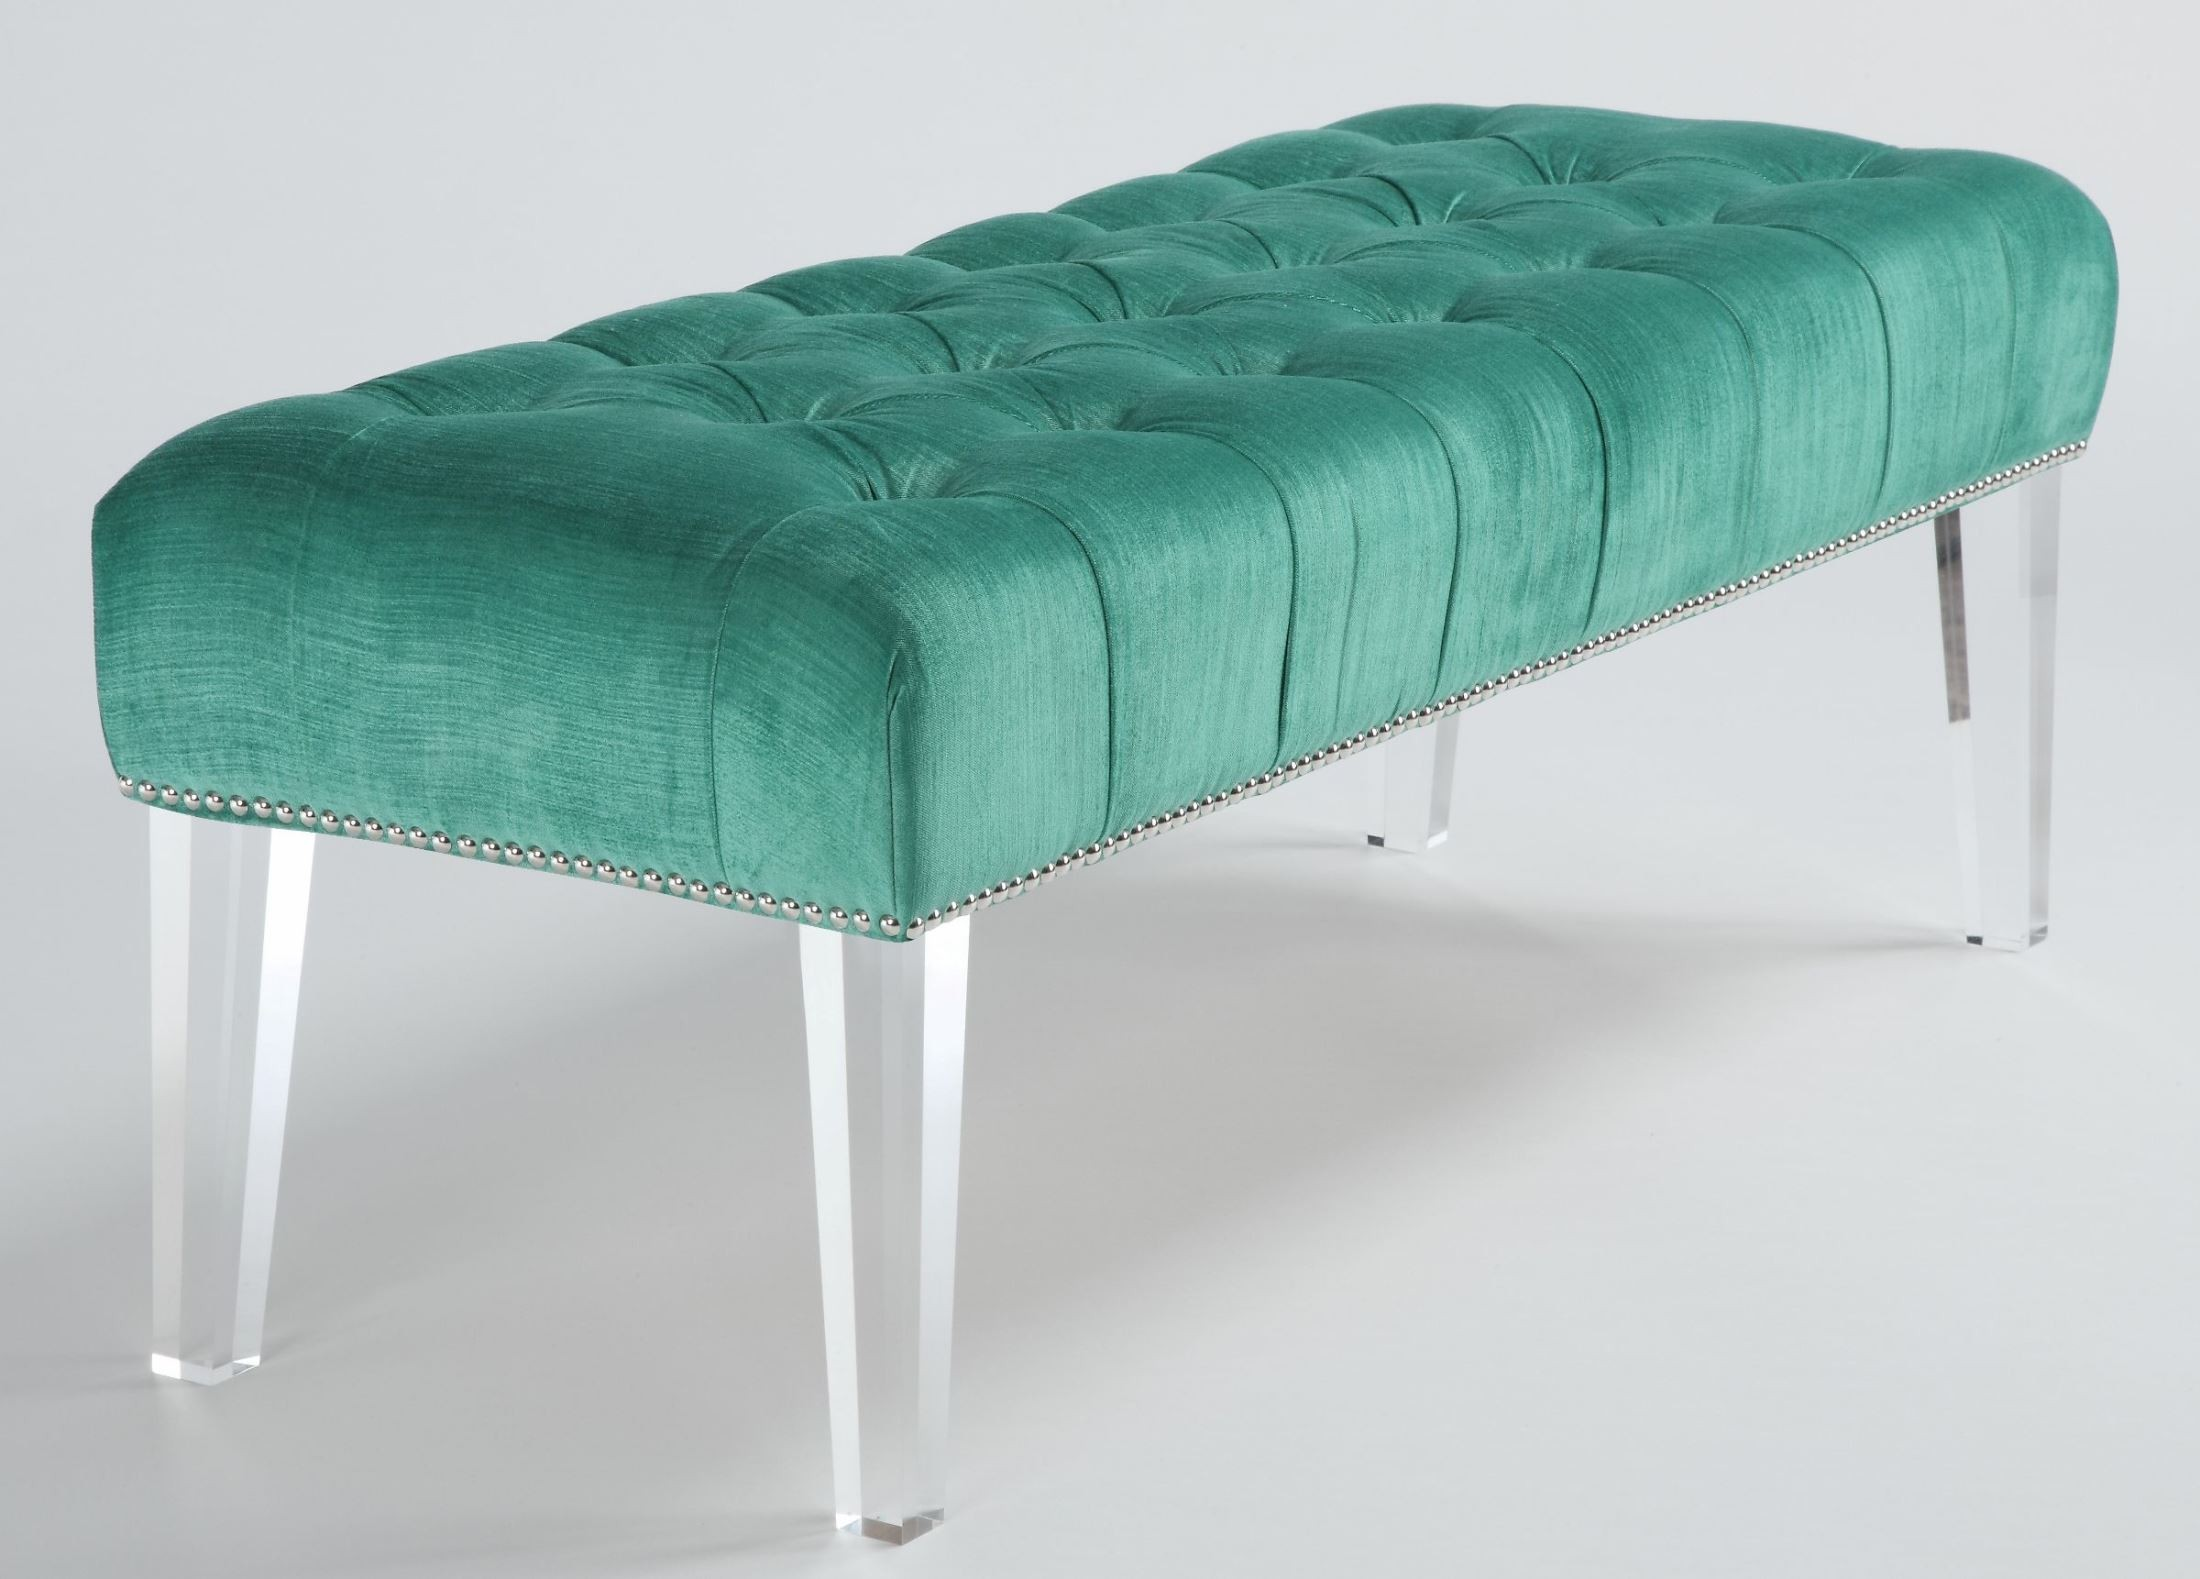 Stella Turquoise Velvet Acrylic Bench From Tov O20 Coleman Furniture